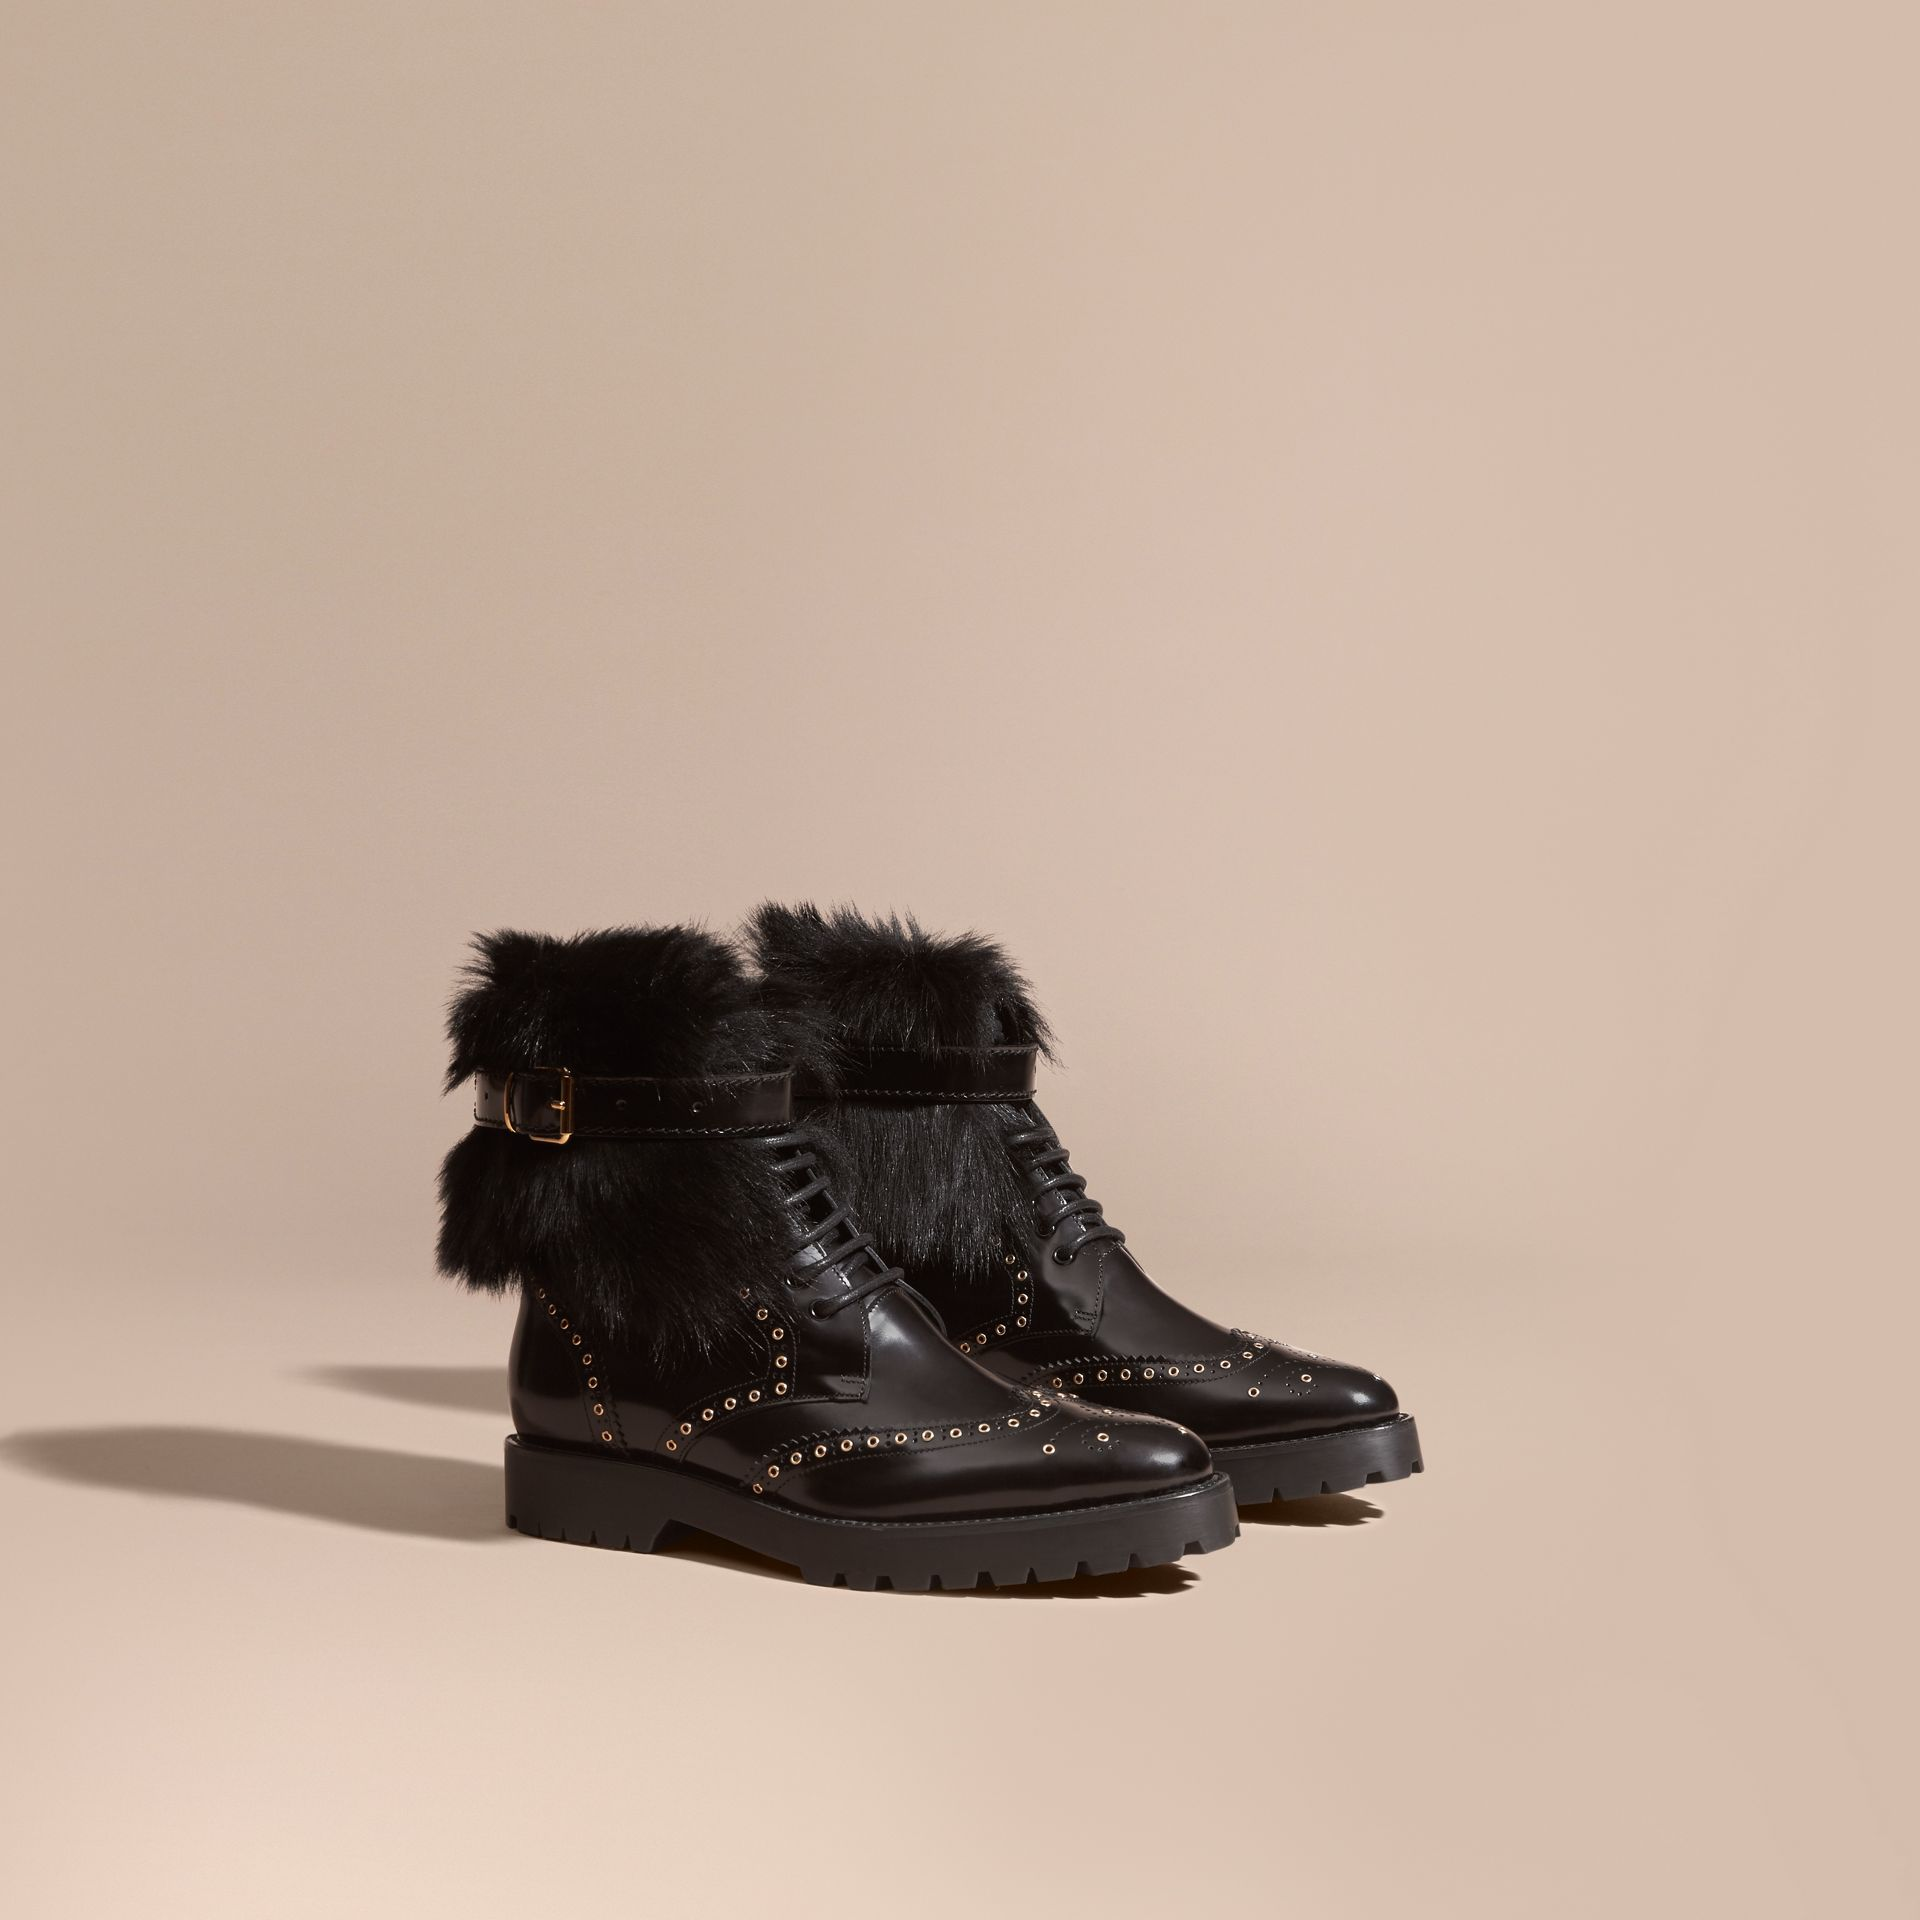 Noir Bottines à bout golf en cuir et shearling - photo de la galerie 1